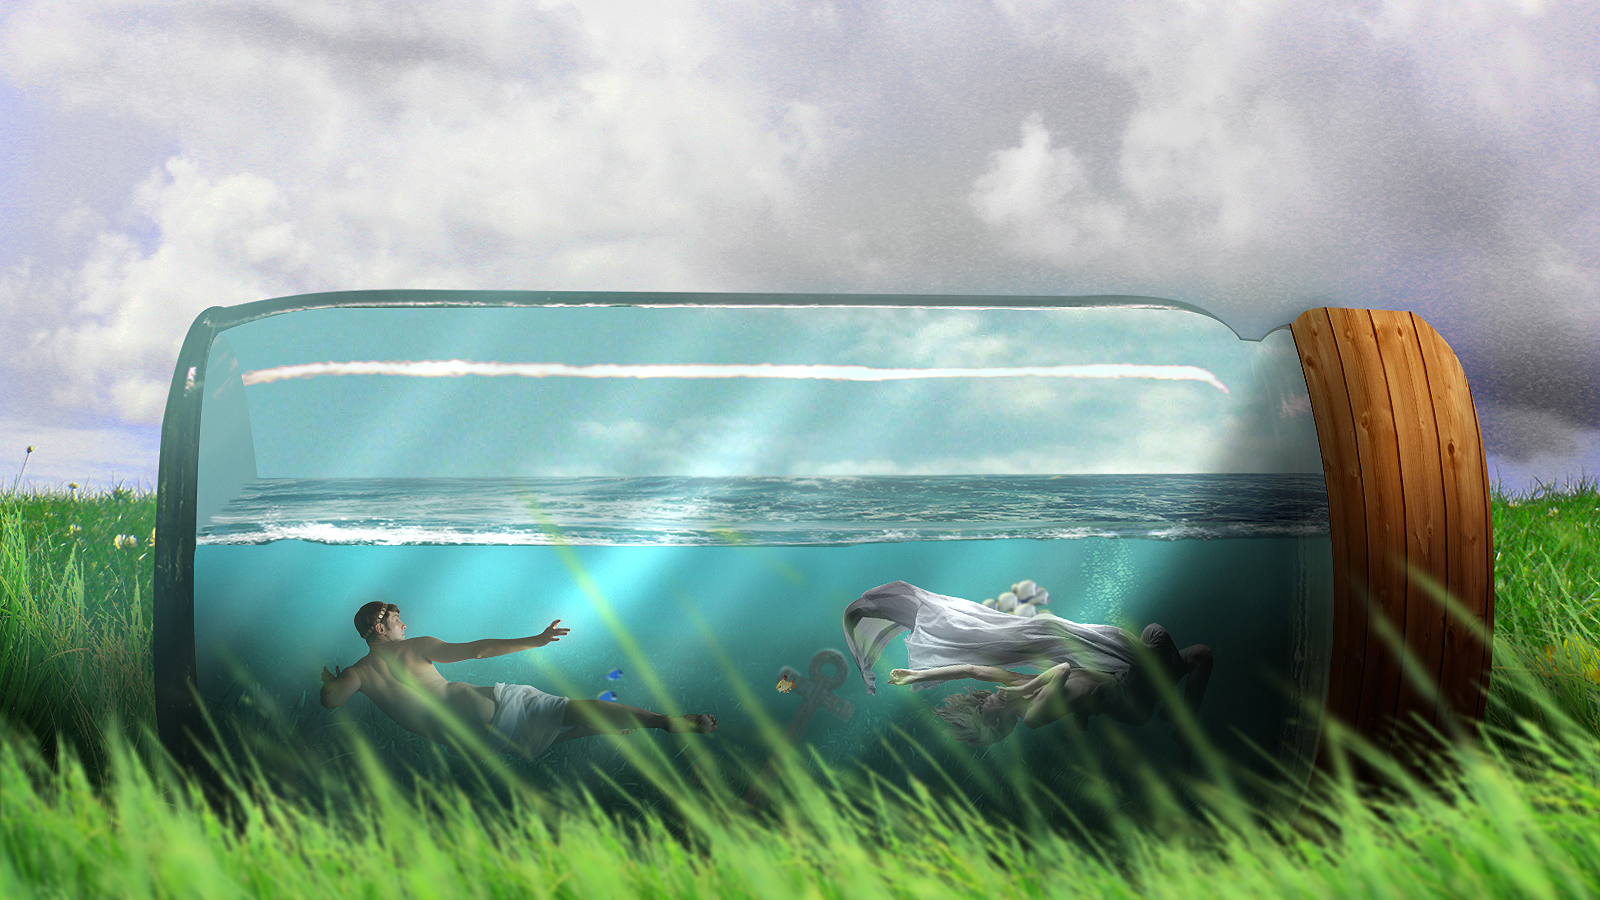 Two Lost Souls Swimming In A Fish Bowl By Iagolts On Deviantart